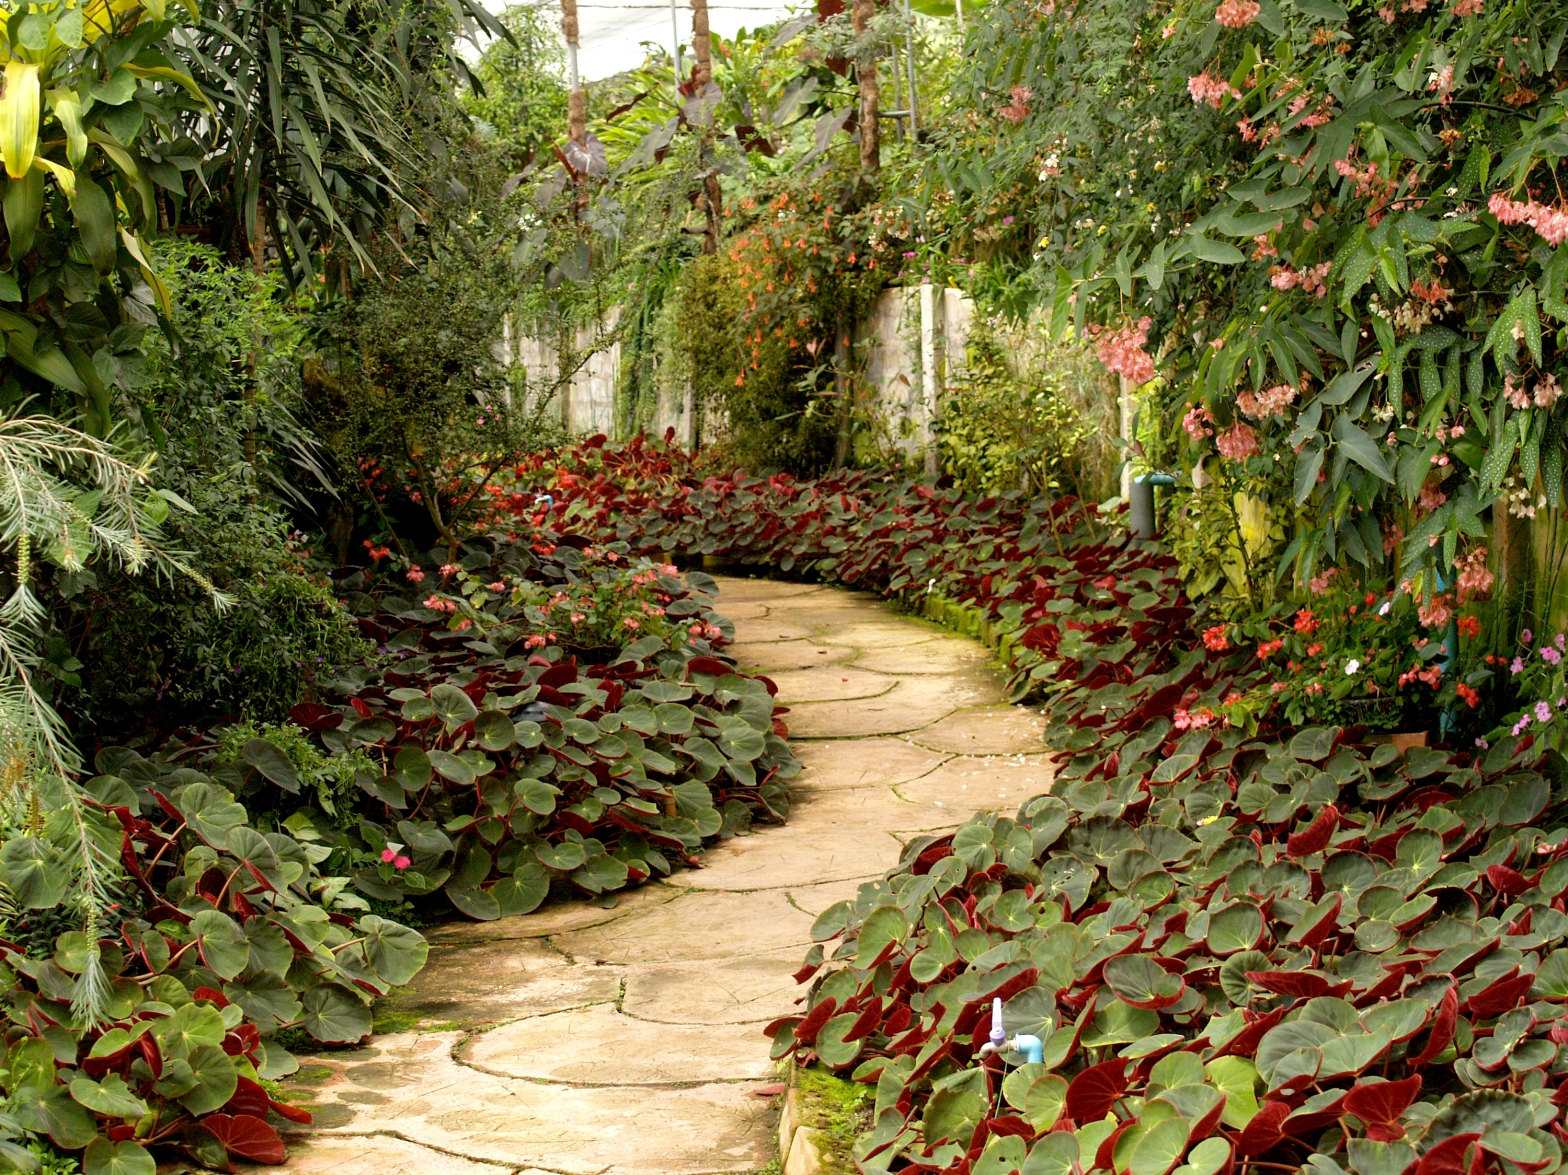 Man with Two Gardens –Our Quran Journey